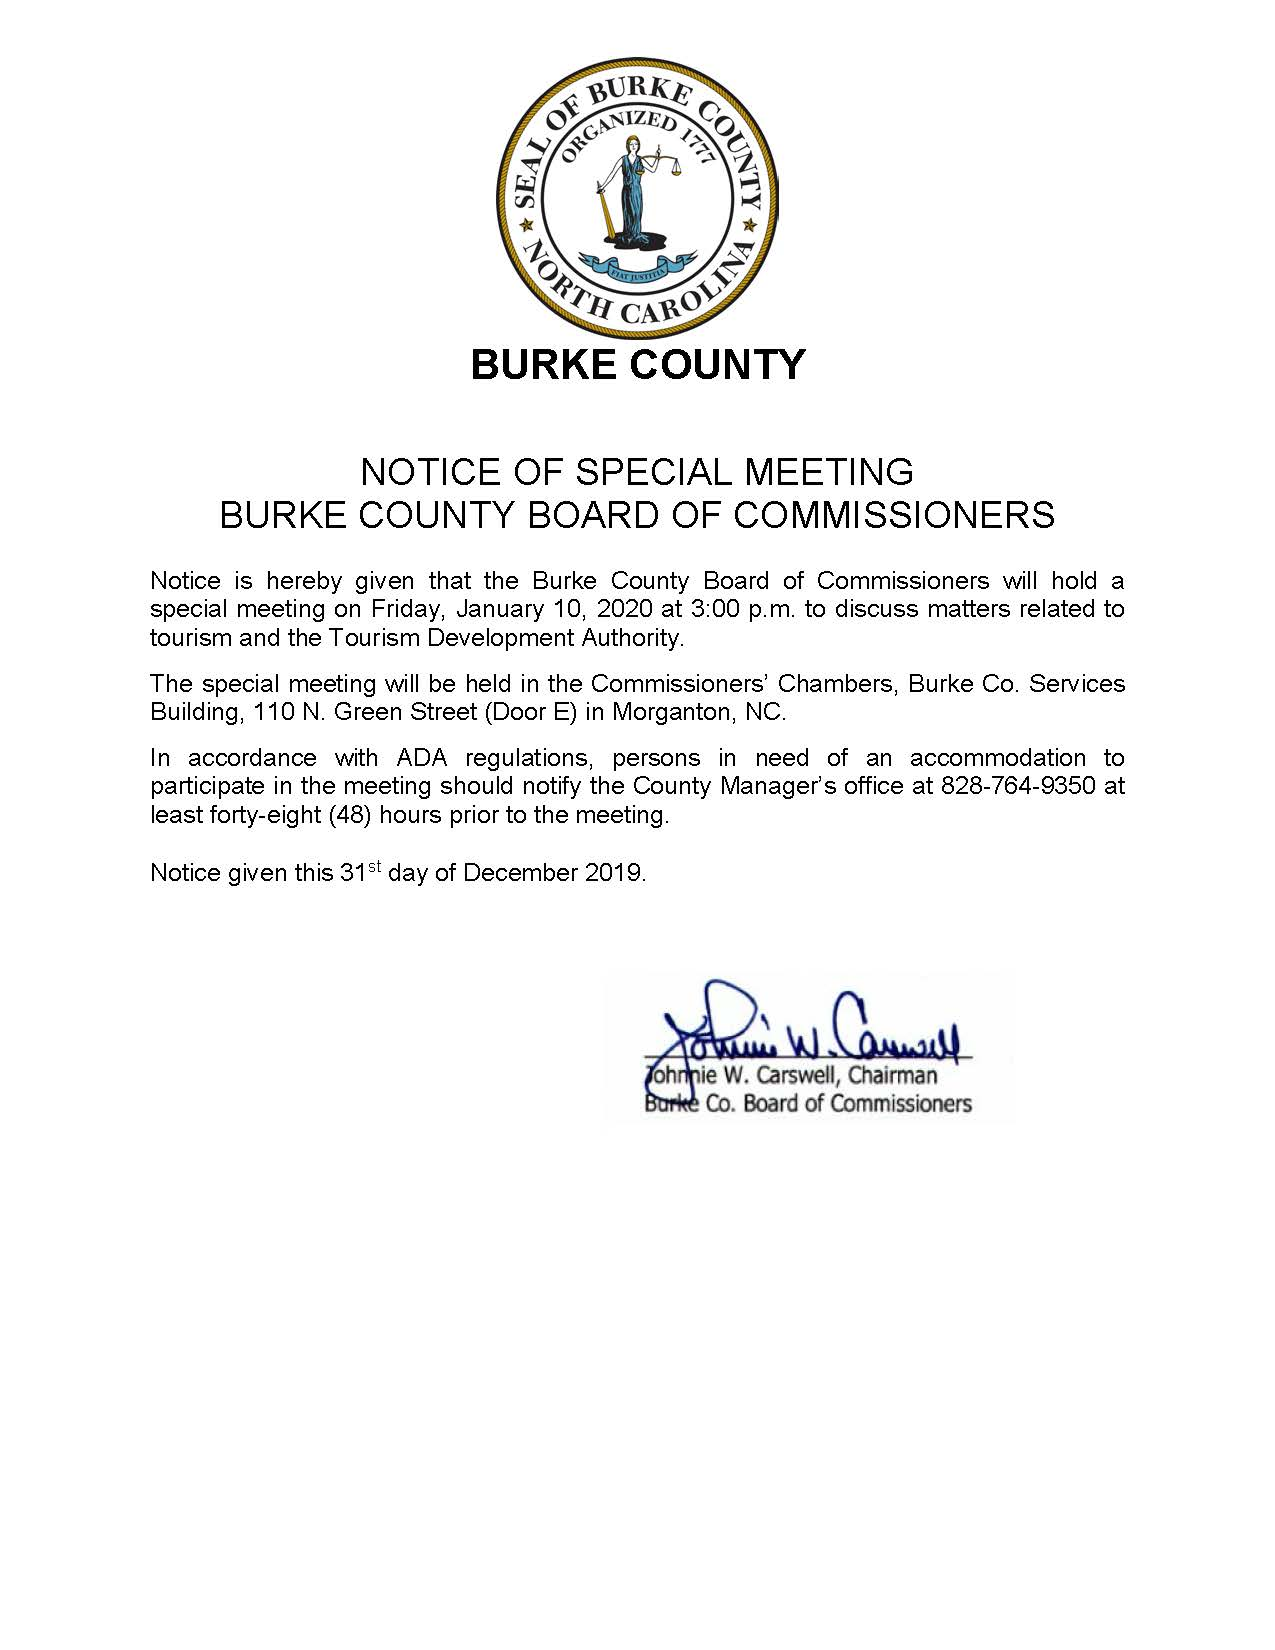 2020 01 10 Special Meeting Notice